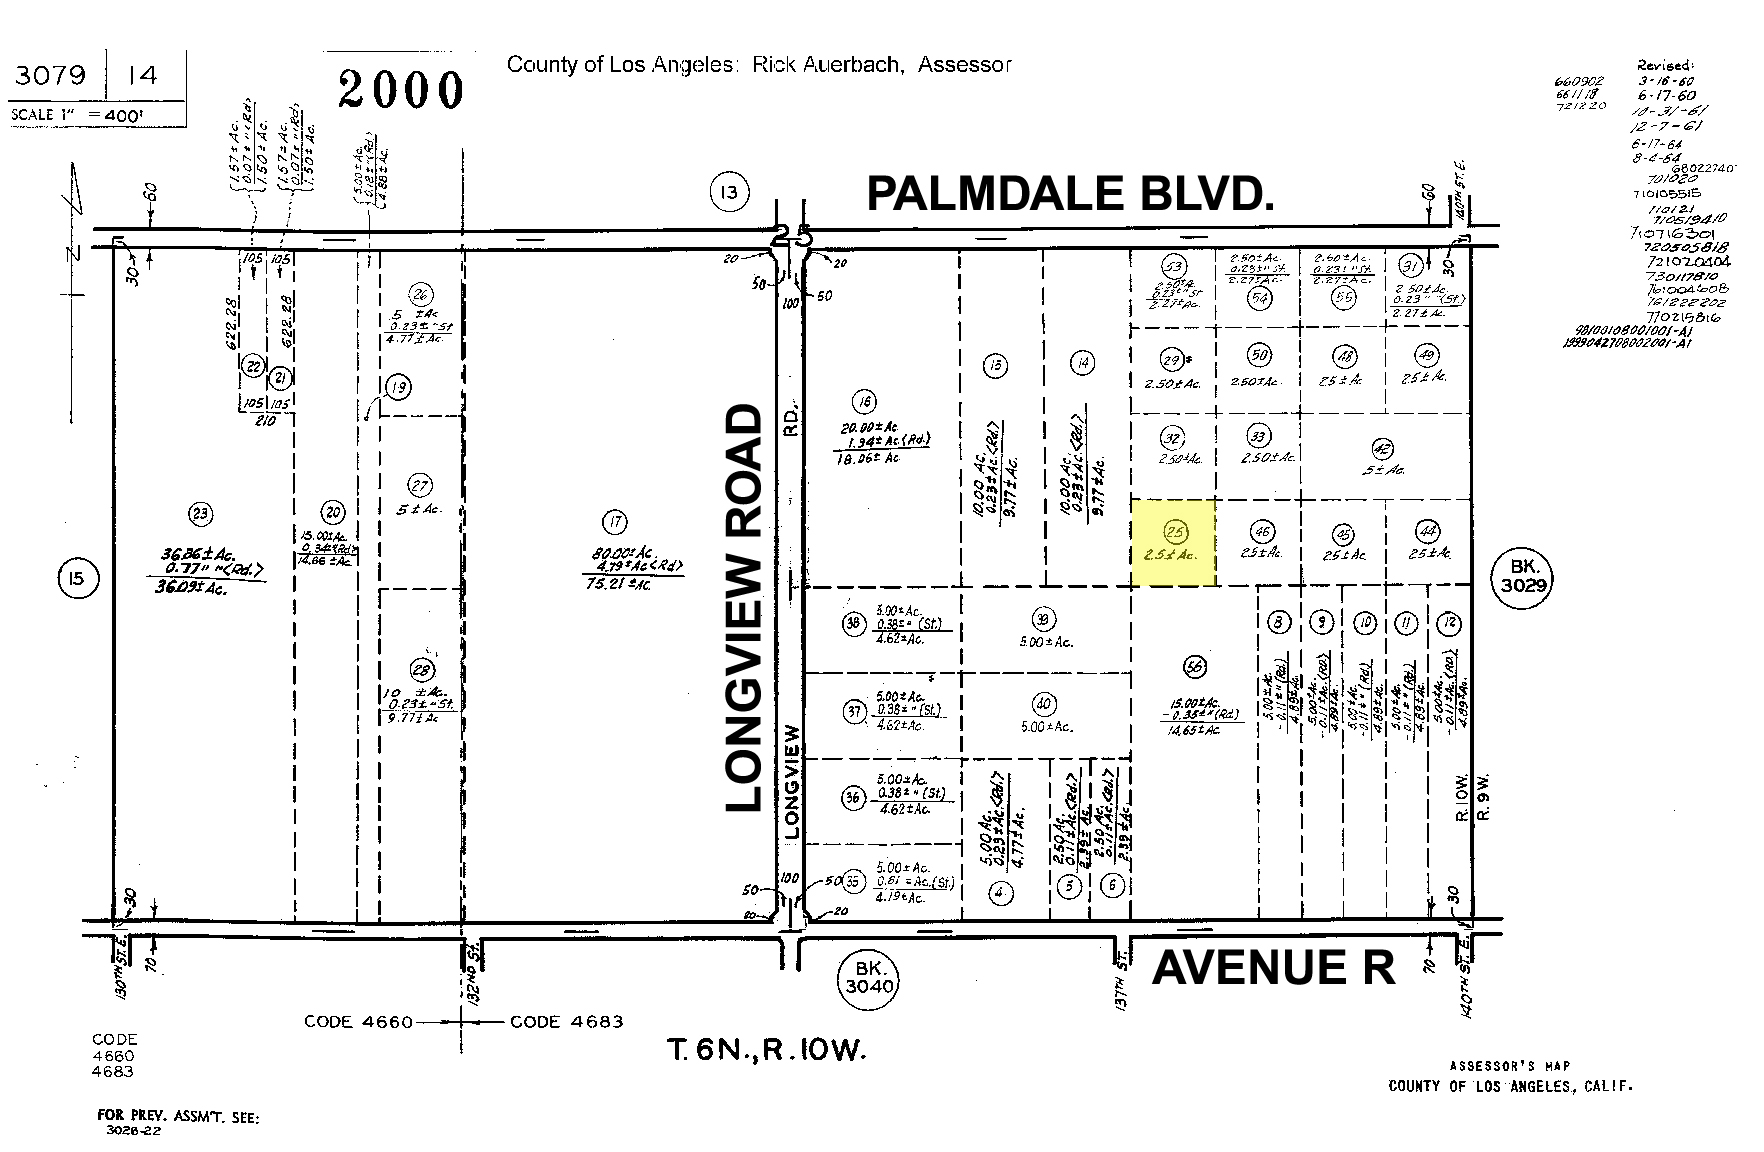 Palmdale Land For Sale Palmdale California Land For Sale - Los angeles assessor map